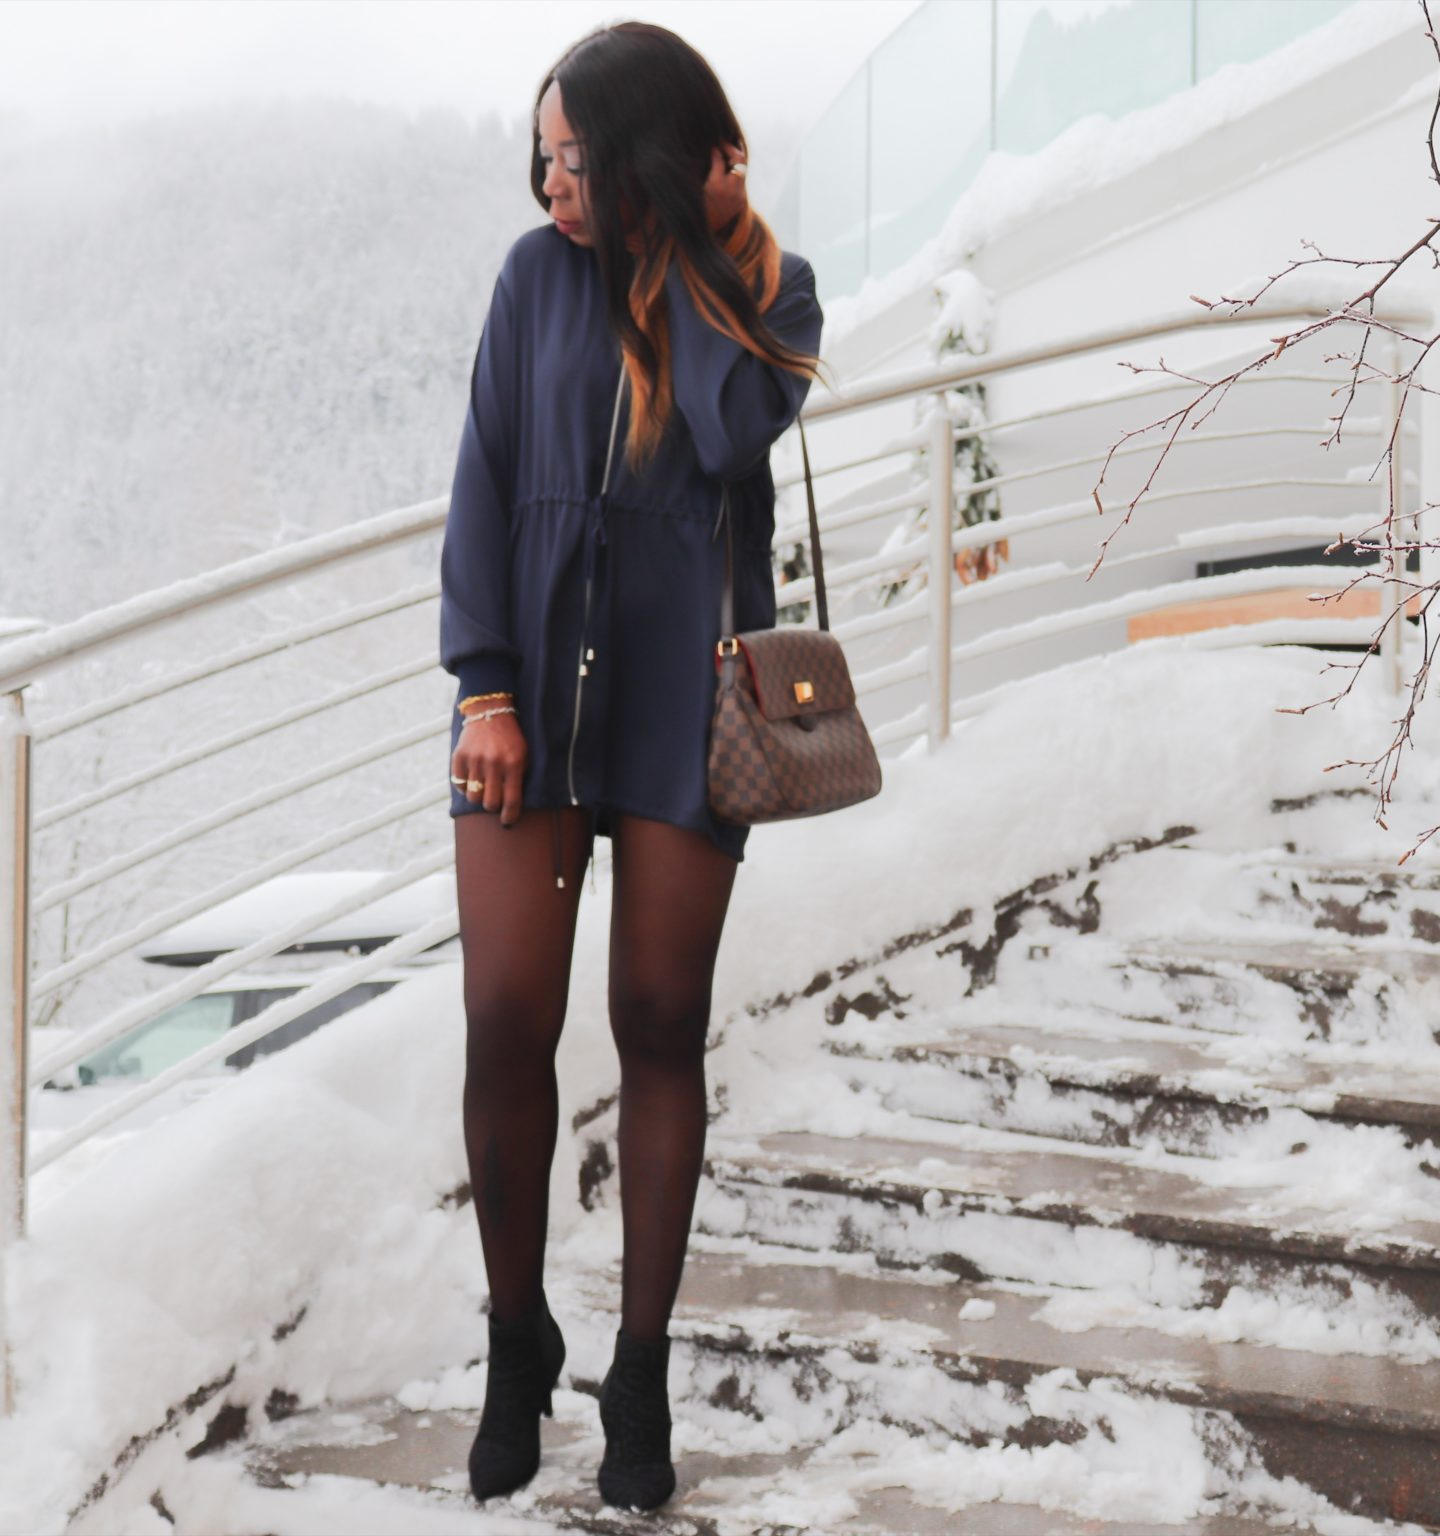 Sheer Black Tights Best Alternetive For Coziness